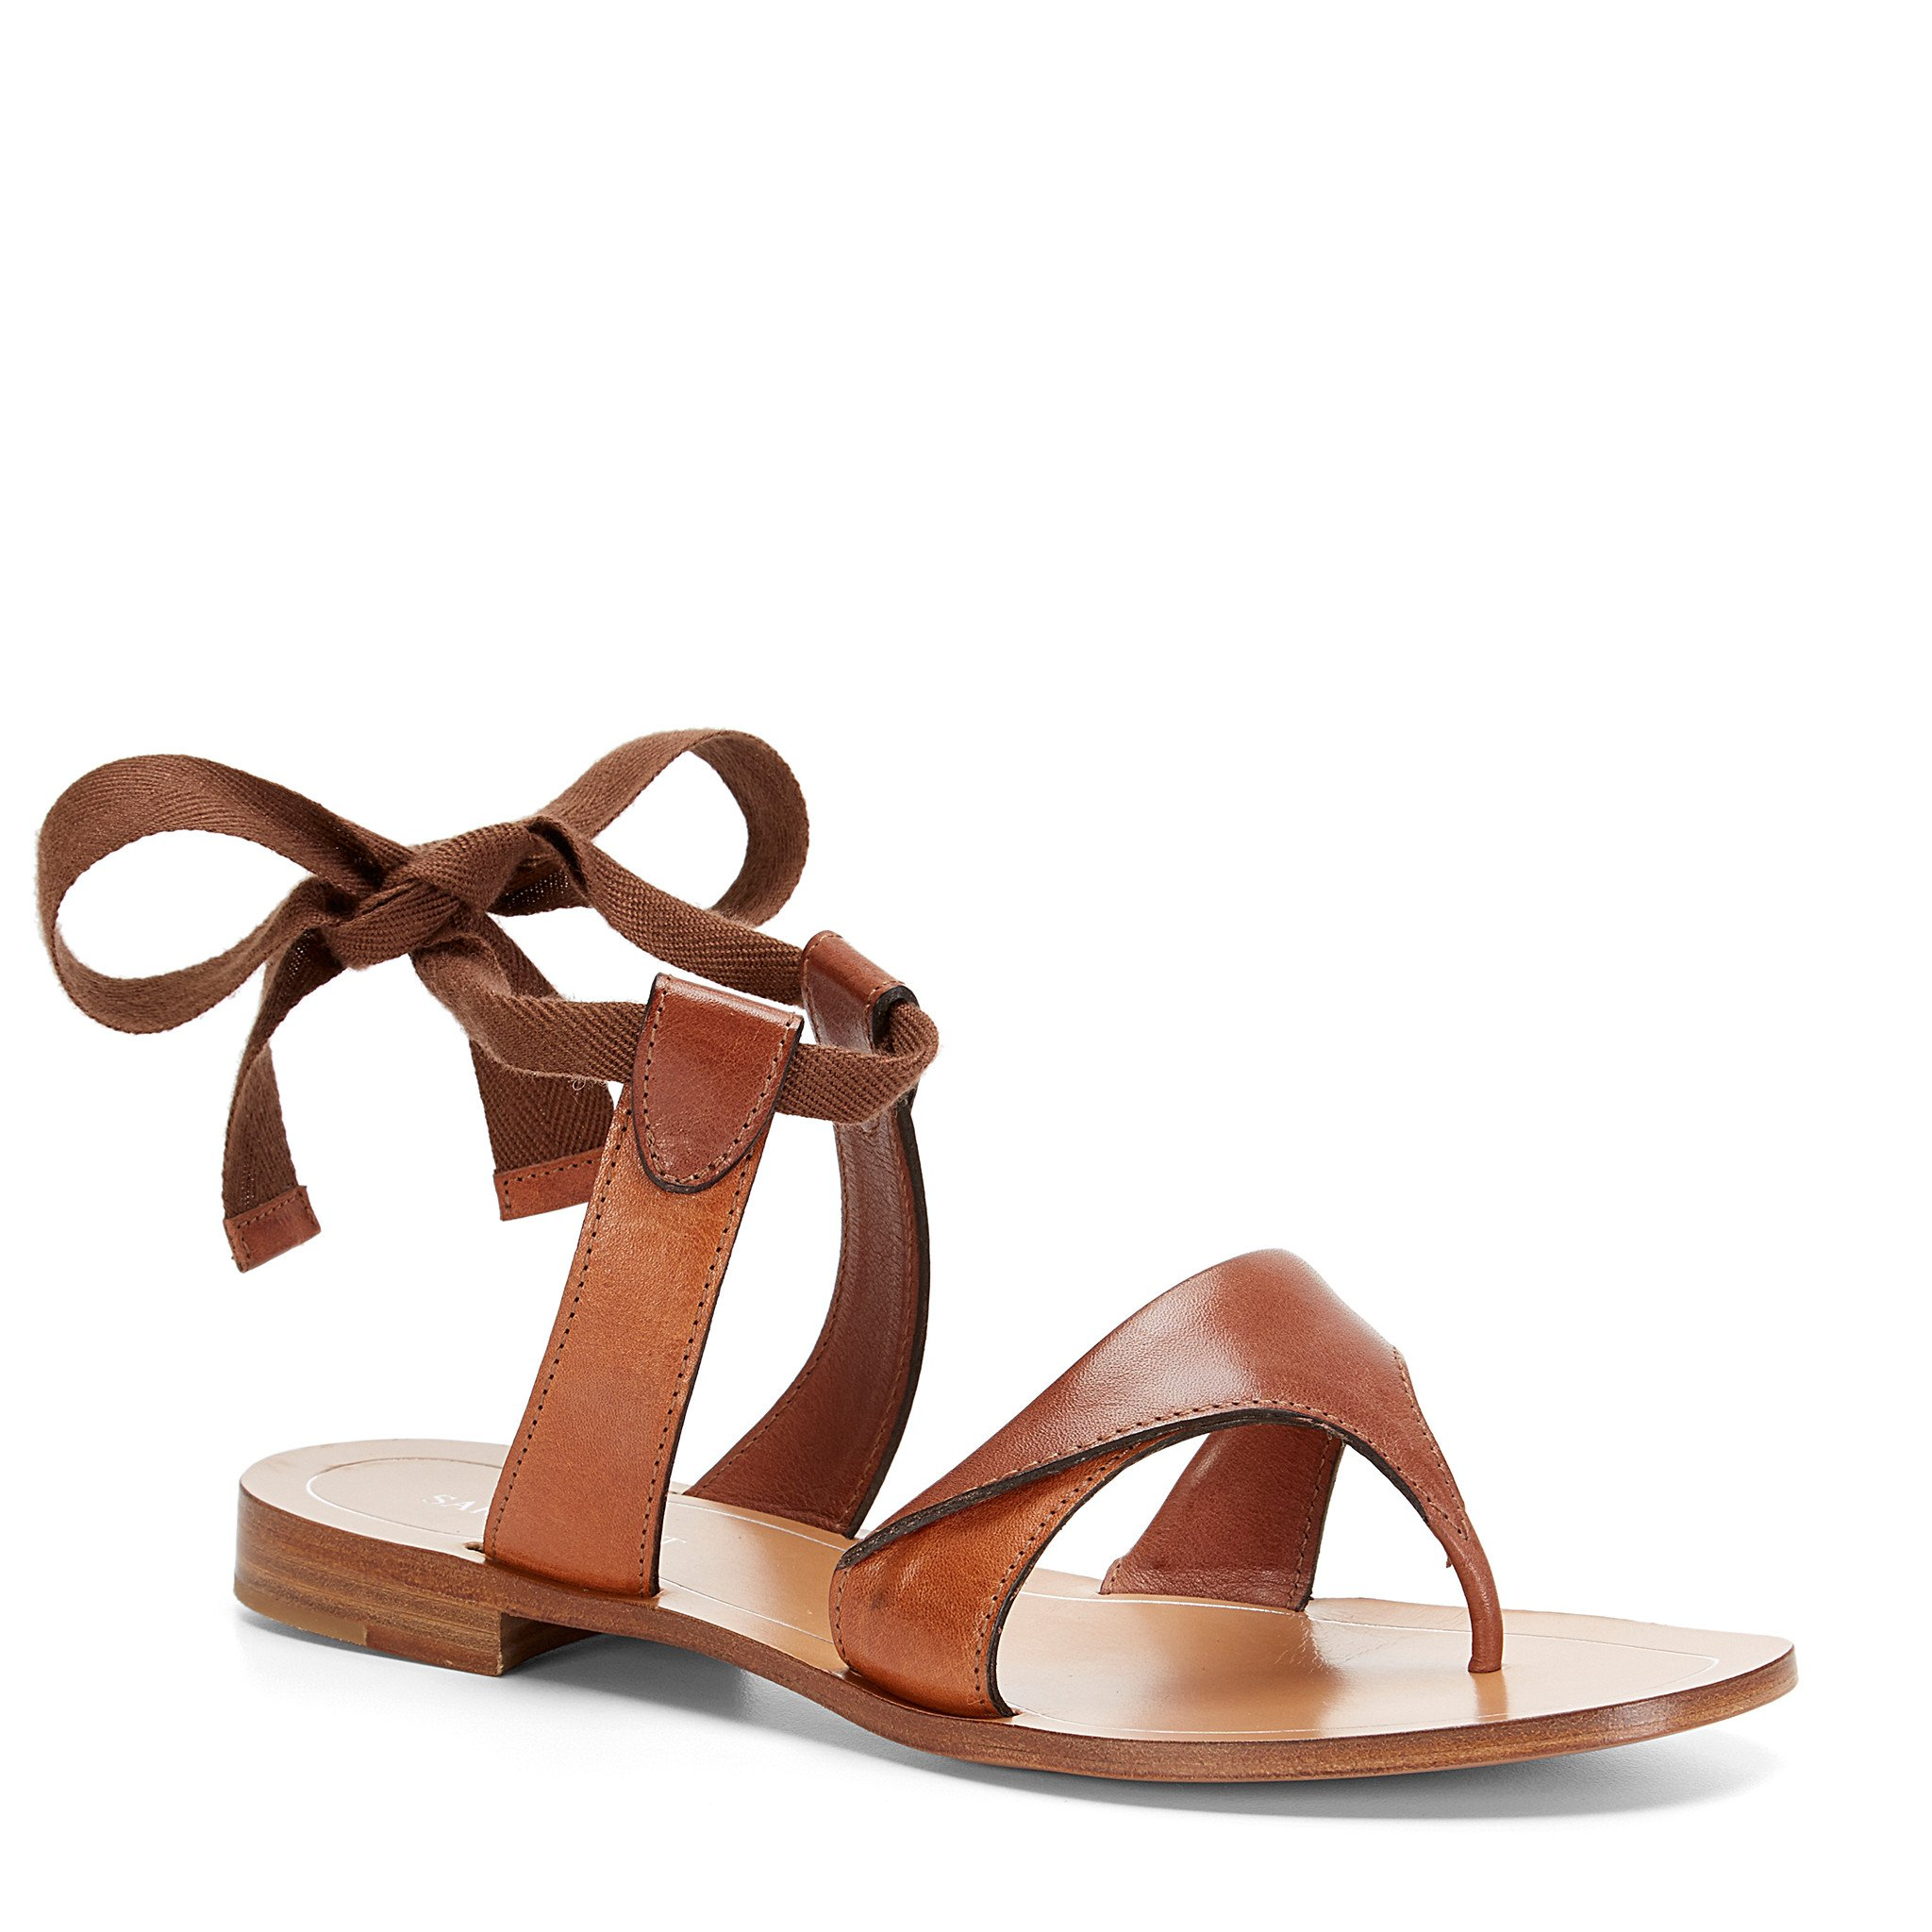 Sarah Flint Grear Sandals-Meghan Markle